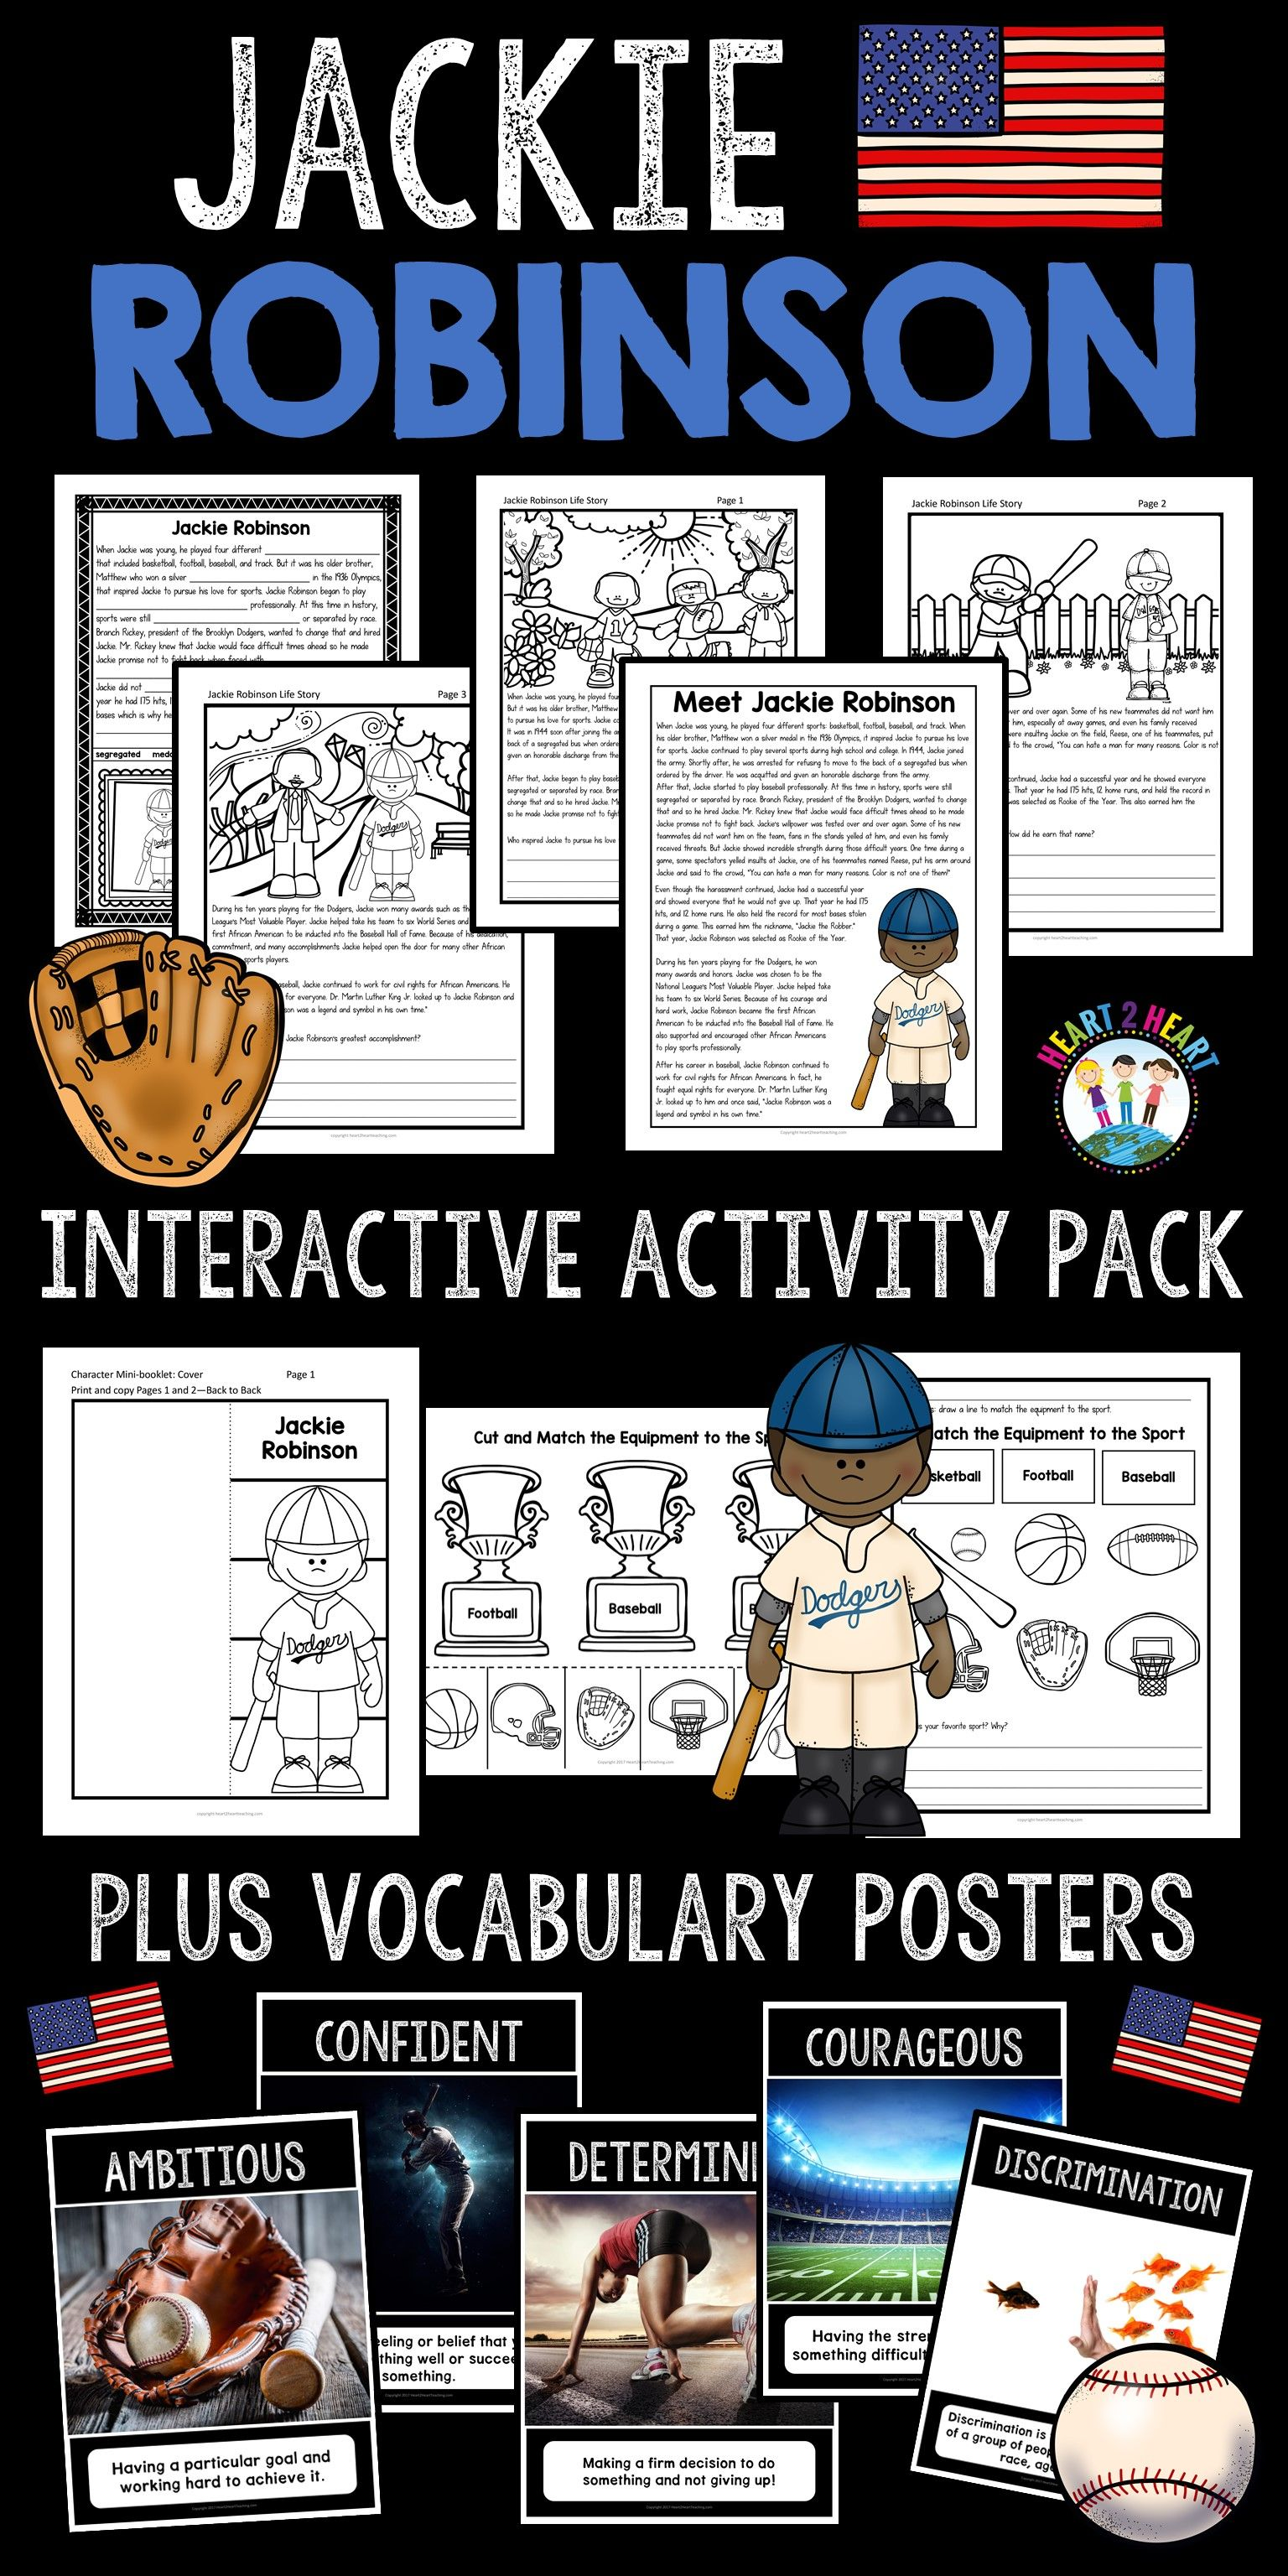 Black History Month Activities The Life Story Of Jackie Robinson Activity Pack